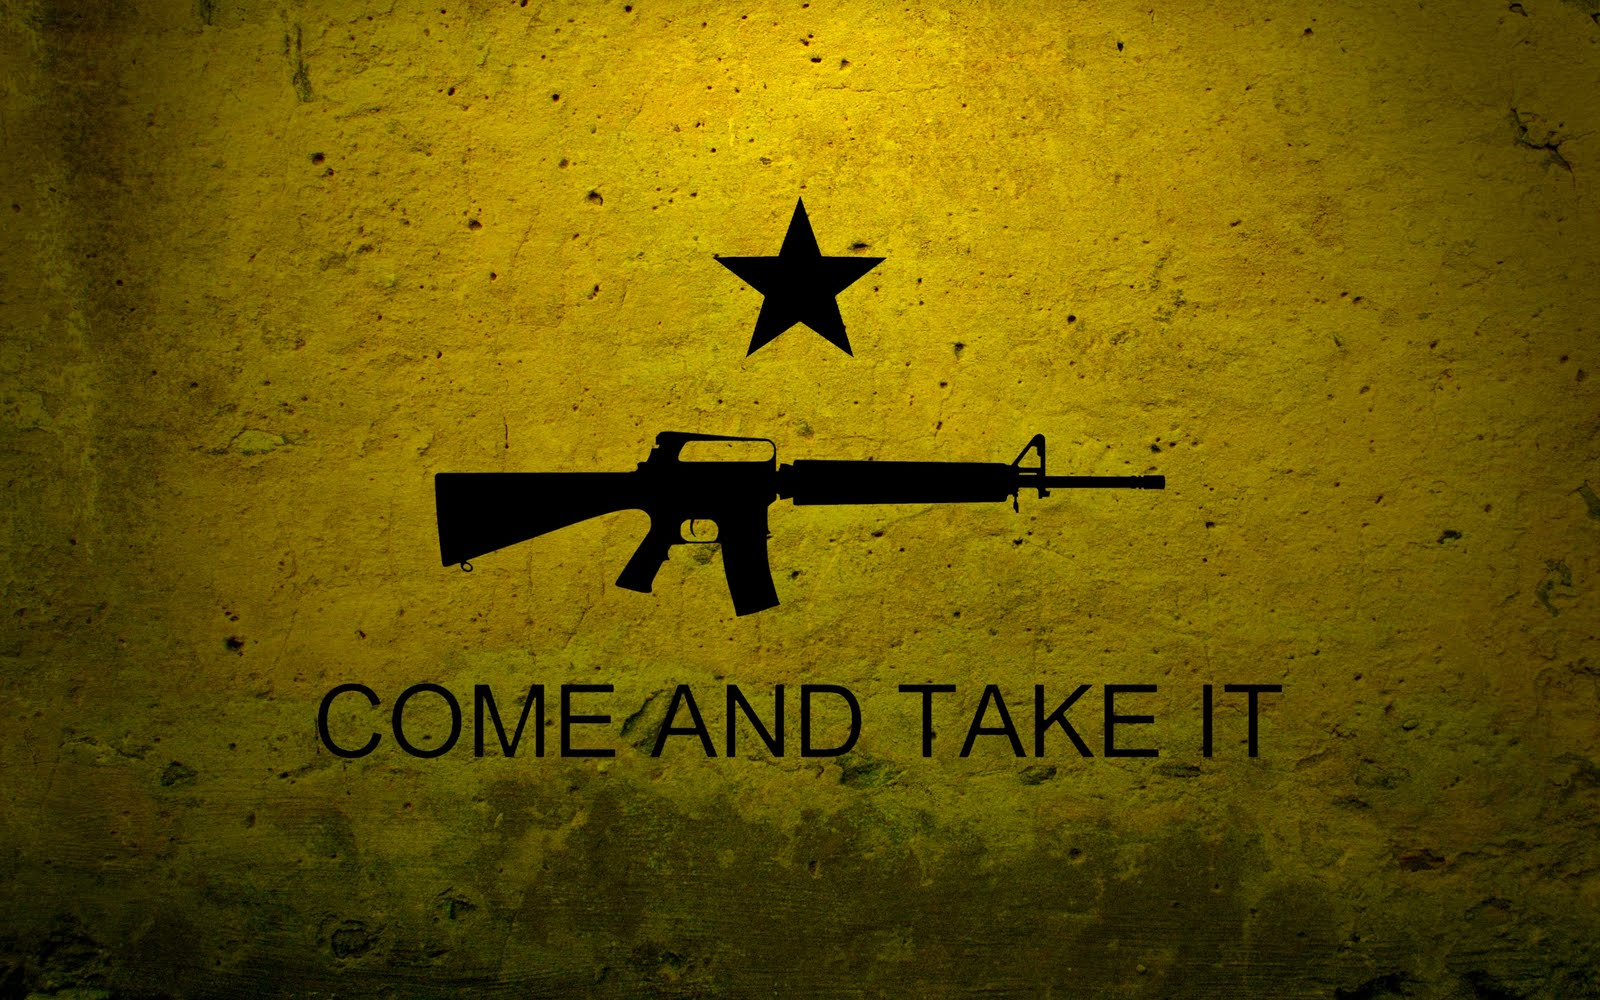 Don T Tread On Me Iphone 6 Wallpaper Wallpaper Ak 47 Wallpapers For Mobile Phones